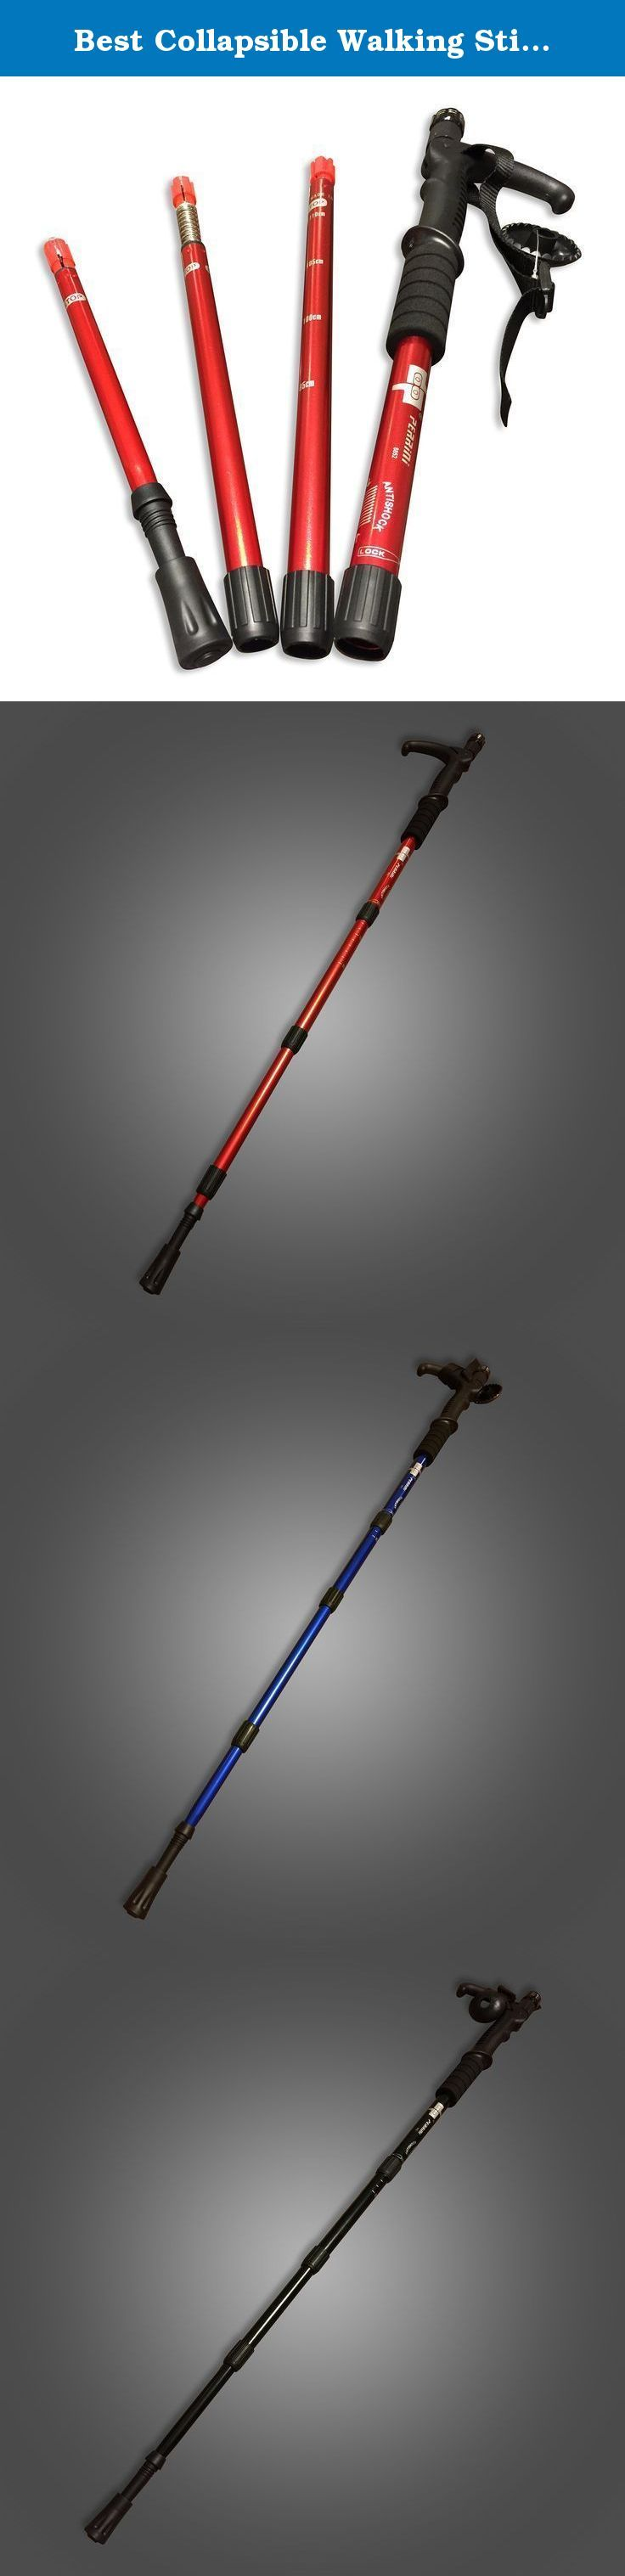 Best Collapsible Walking Sticks for Men, Women , Kids and for Protection with Anti Shock and LED Flashligh. Walking Stick Collapsible and Collapsible Hiking Stick for All Outdoor Activities. Adjustable Light Weight Hiking and Backcountry Ski Poles and Cross Country Ski Poles. Walking Pole Can Be Used for Exercise and Self Defense. Fitmistry Adjustable Hiking and Walking Poles will bring out the best trails for any situations. Whether you are hiking in the mountains or walking around your...